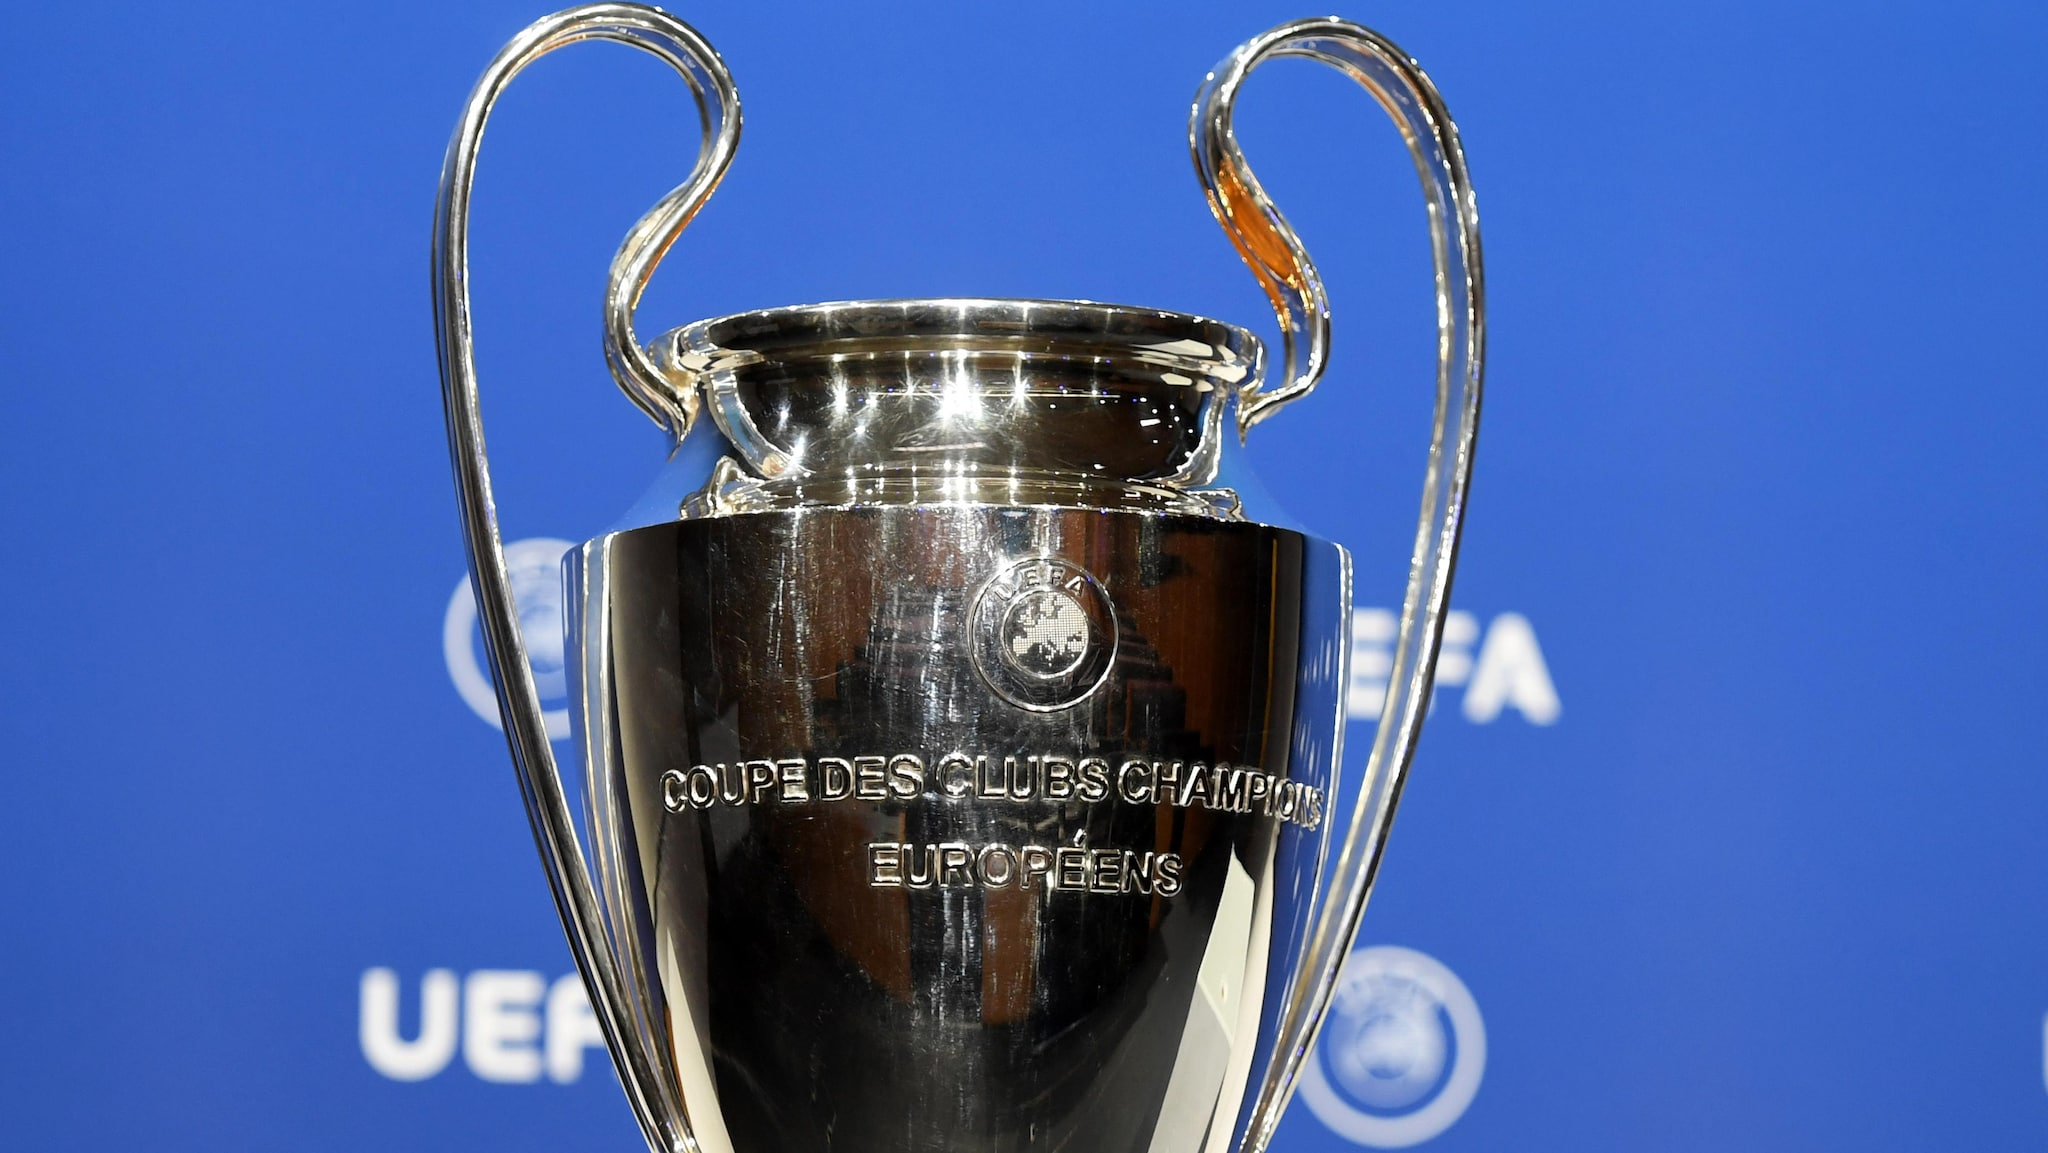 2021/22 UEFA Champions League: all you need to know